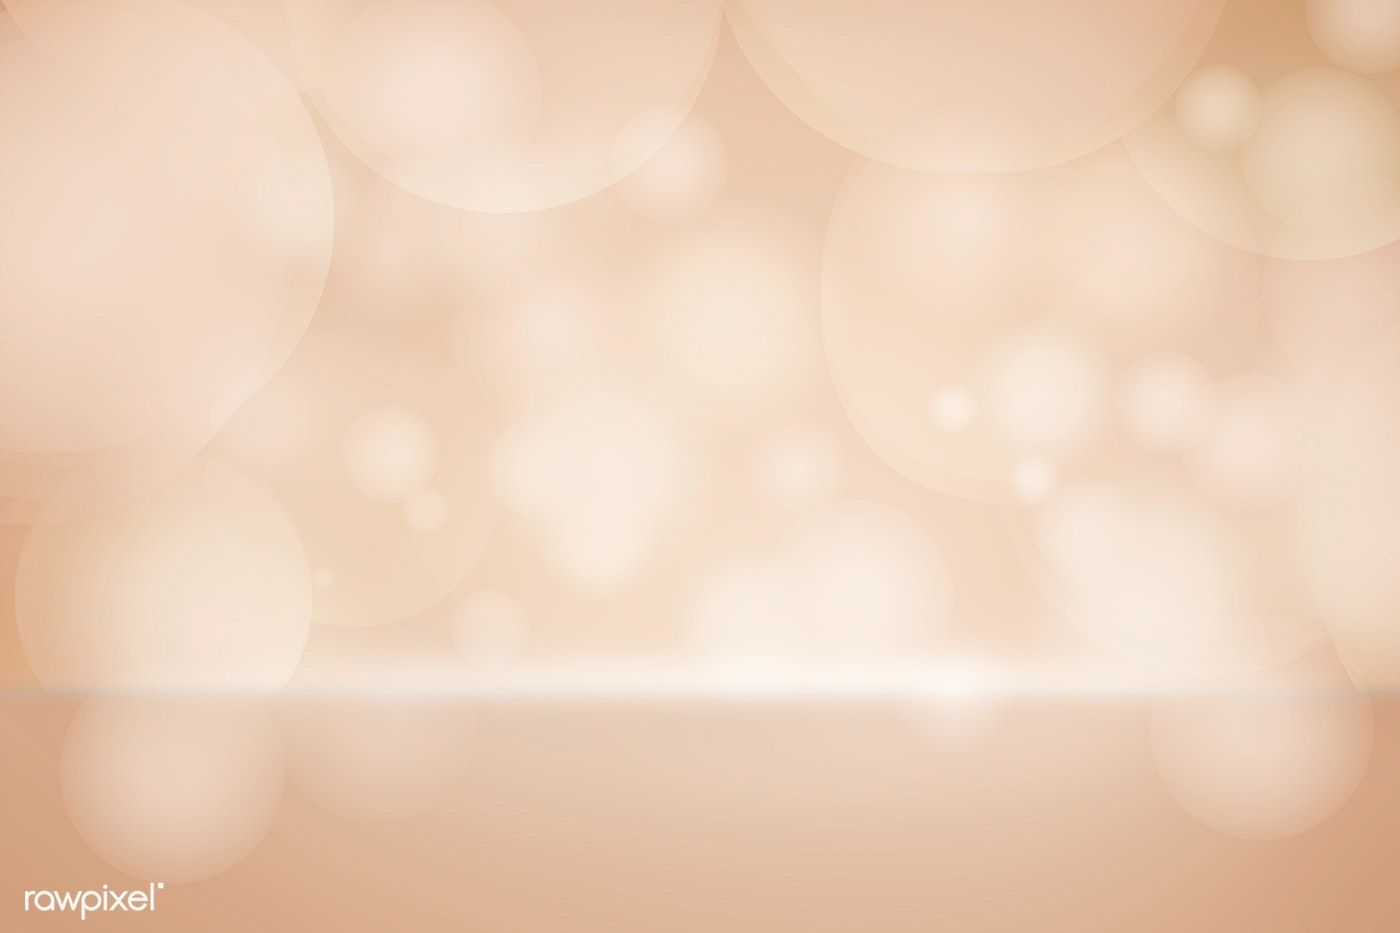 Brown Bokeh Textured Plain Background Free Image By Rawpixel Com